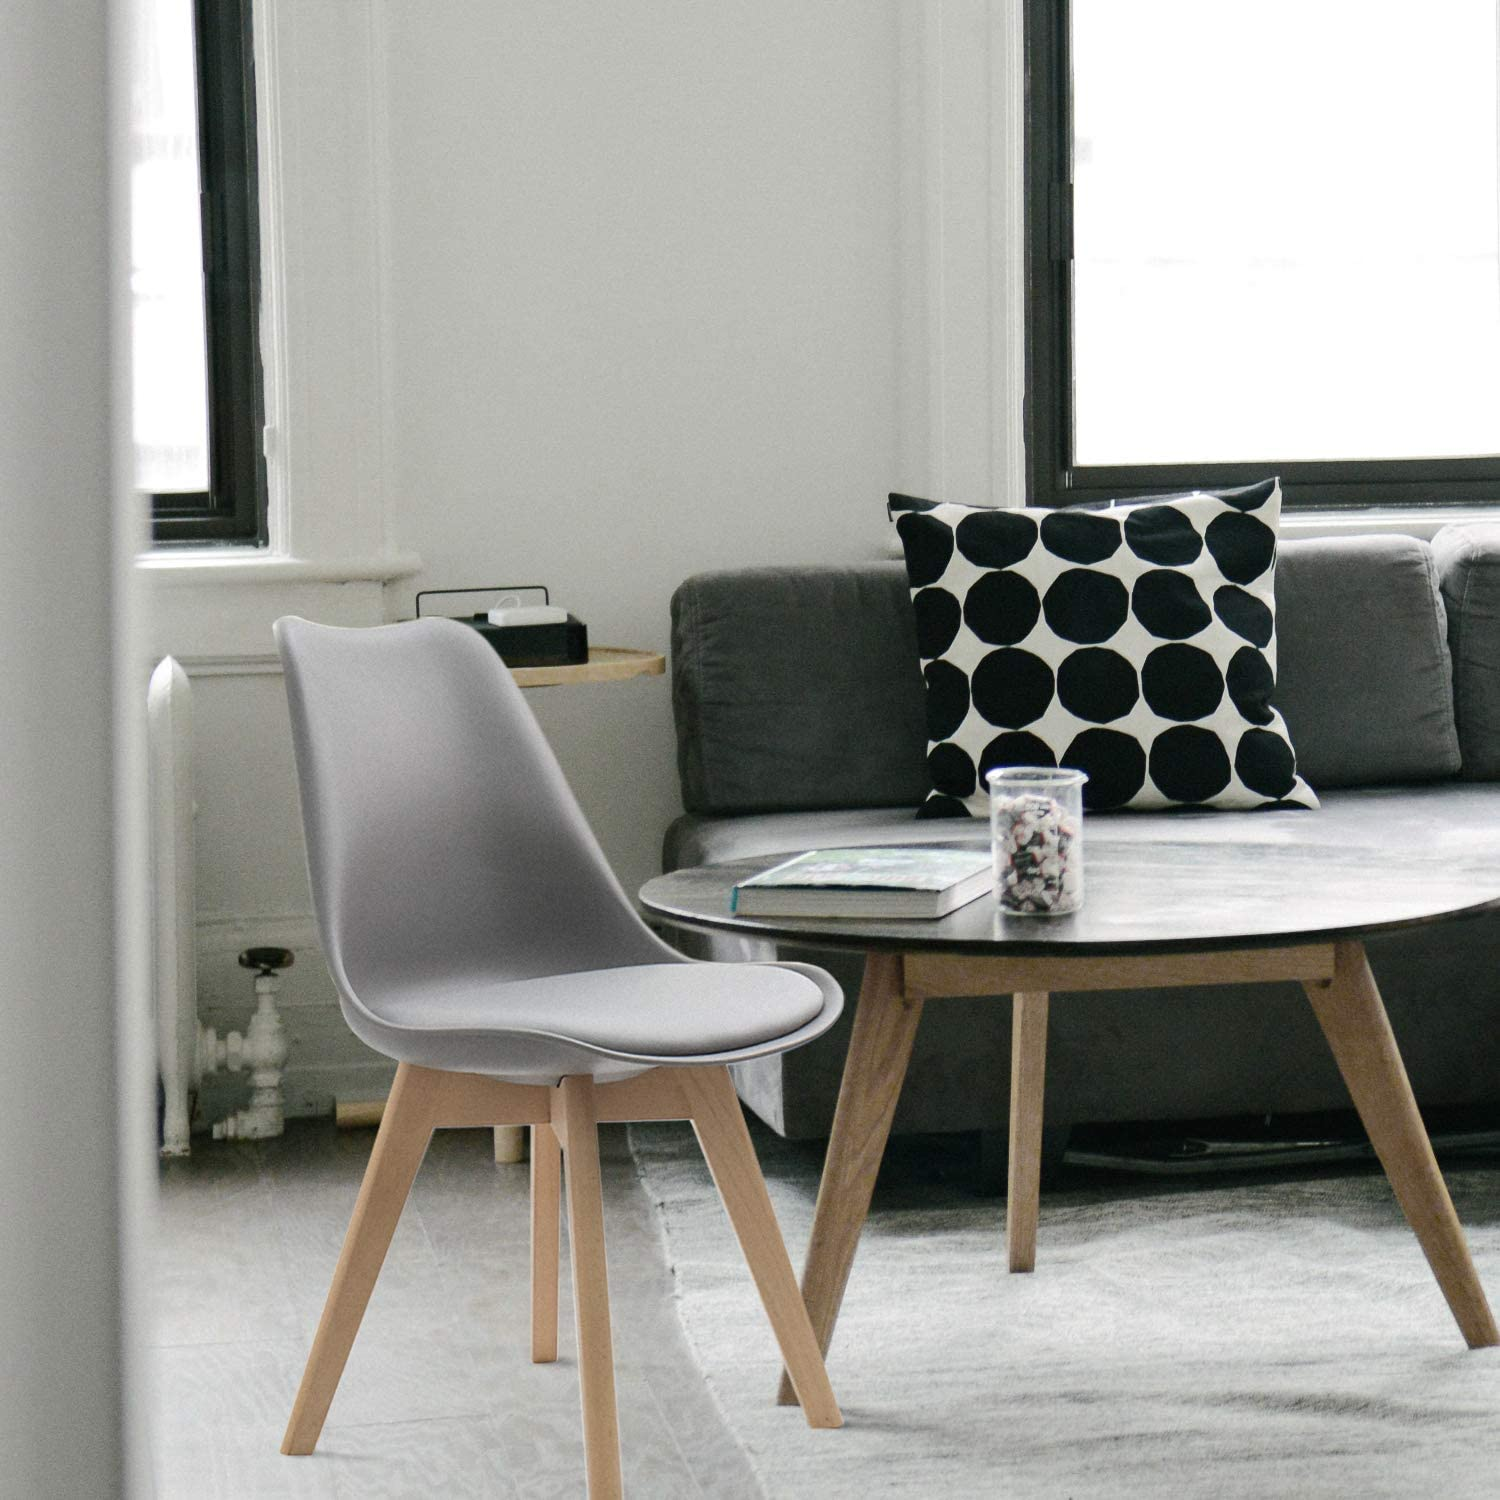 Furmax Mid Century Modern DSW Dining Chair Upholstered Side Chair with Beech Wood Legs and Soft Padded Shell Tulip Chair for Dining Room Living Room Bedroom Kitchen Set of 4 Gray